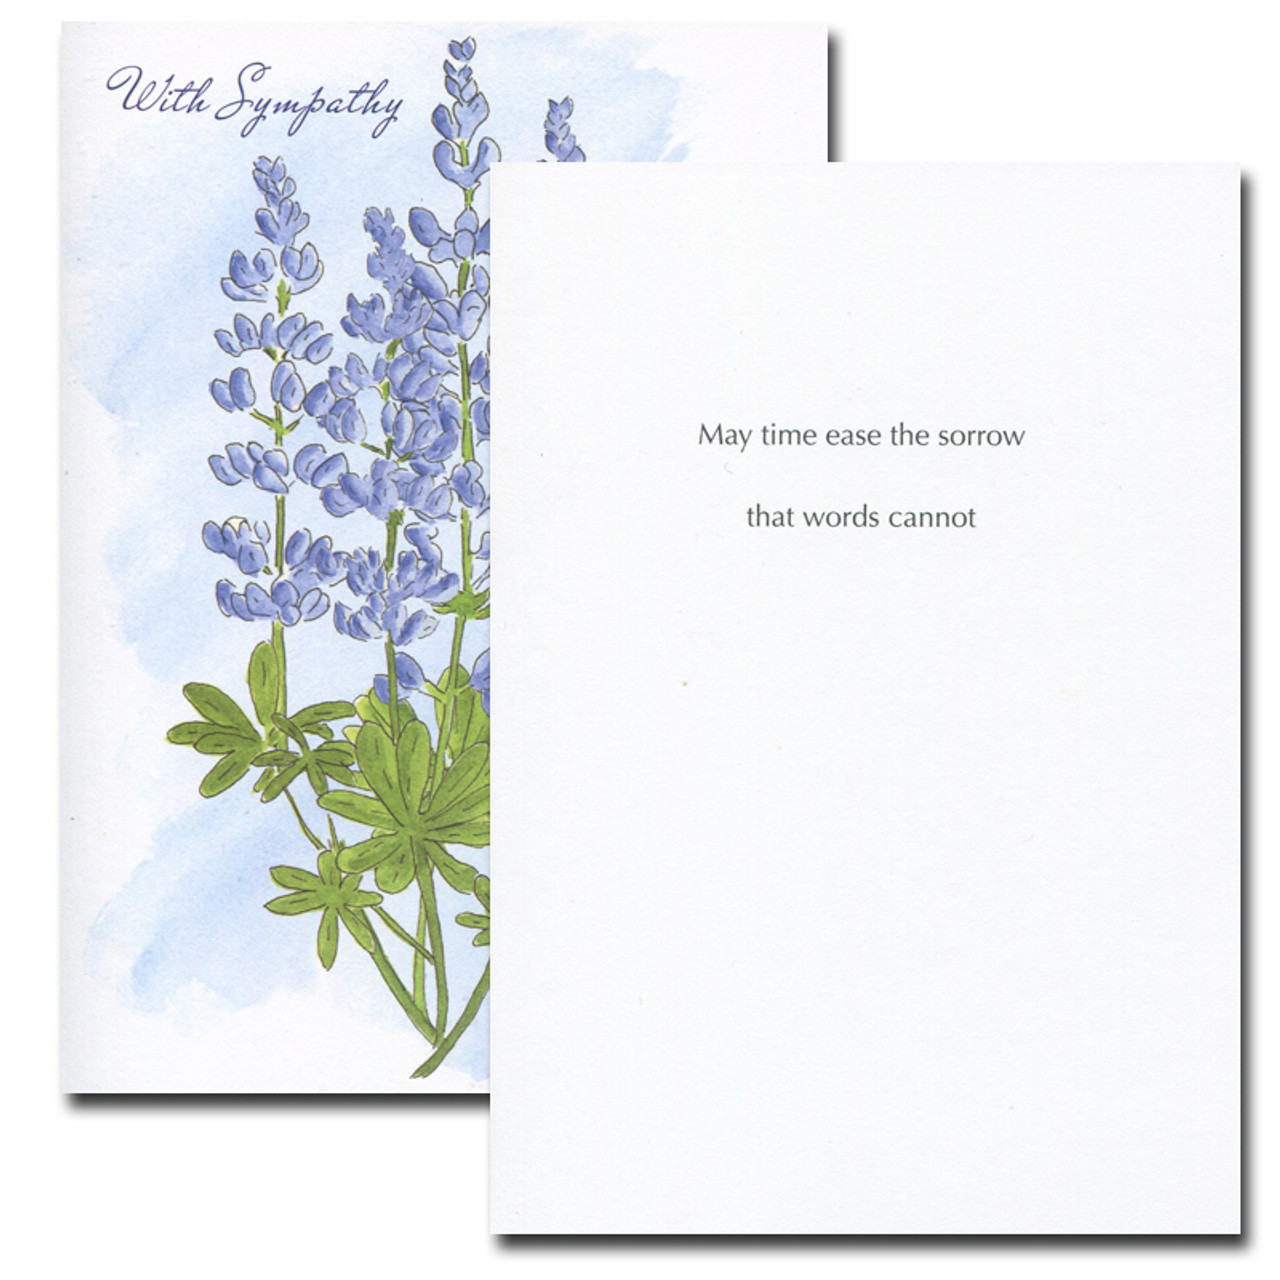 Inside of Lupine Sympathy Card reads: May time ease the sorrow that words cannot